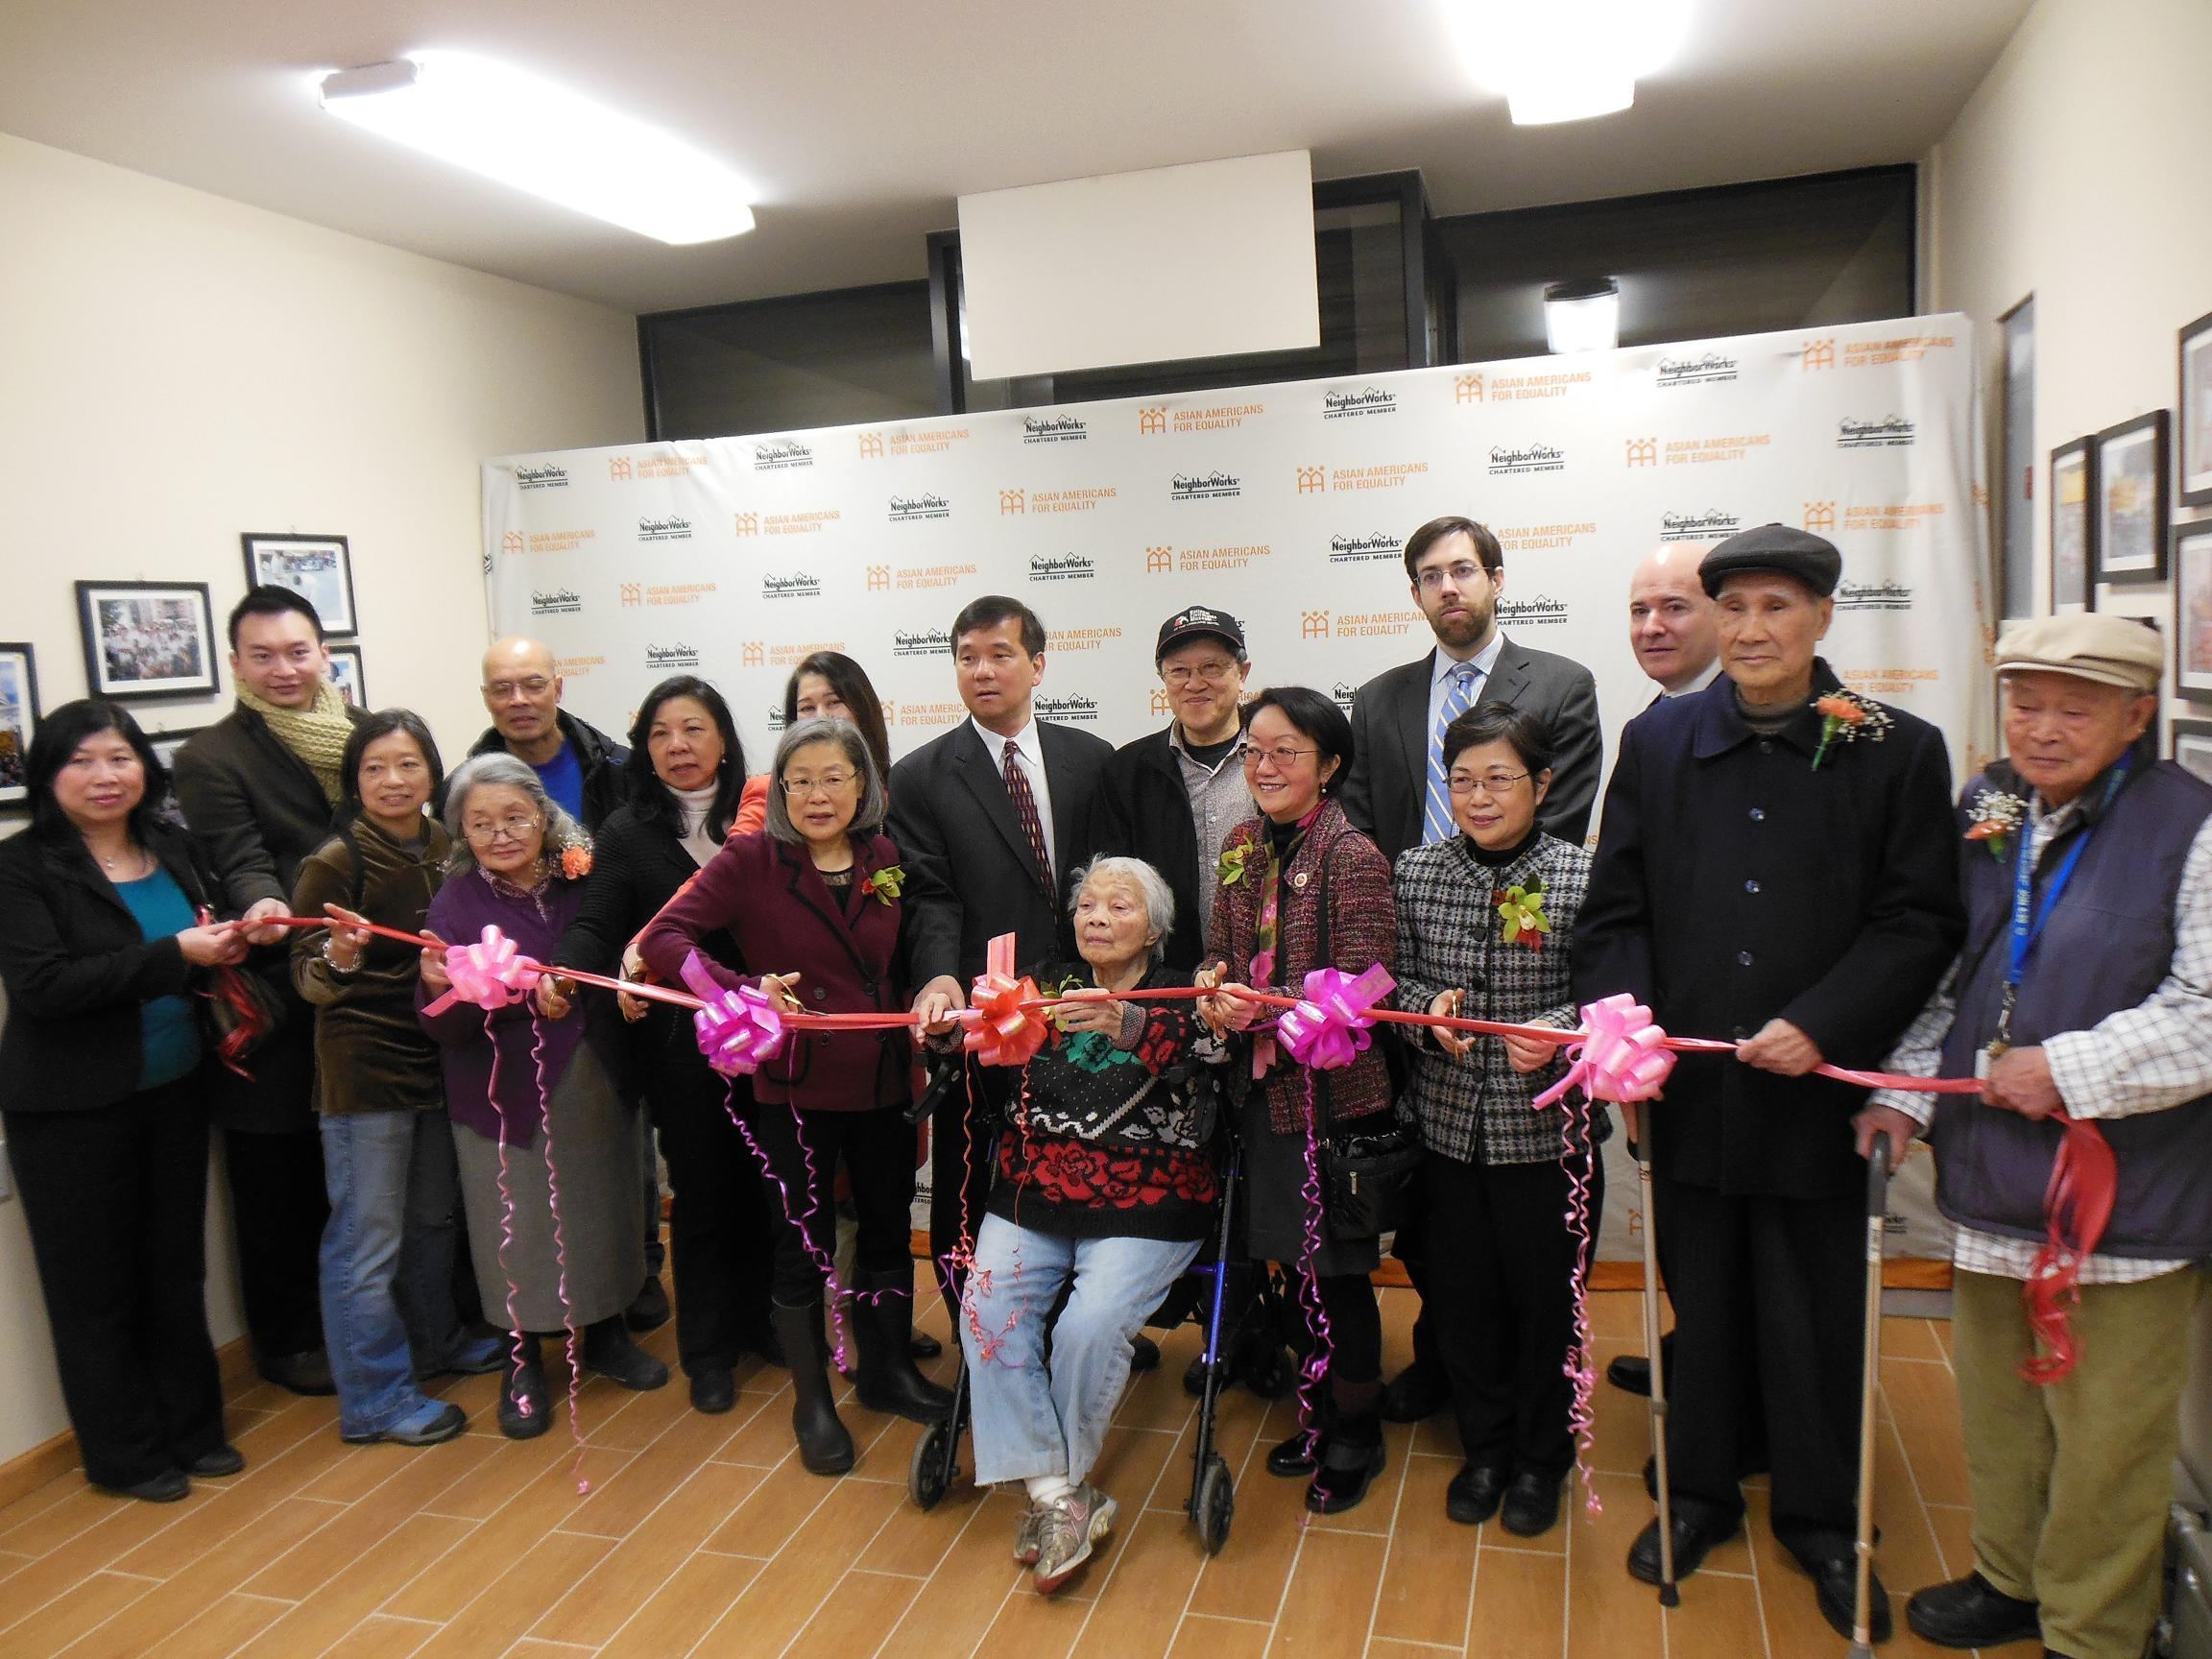 AAFE Celebrates Opening of 111 Division and 2 Allen Offices